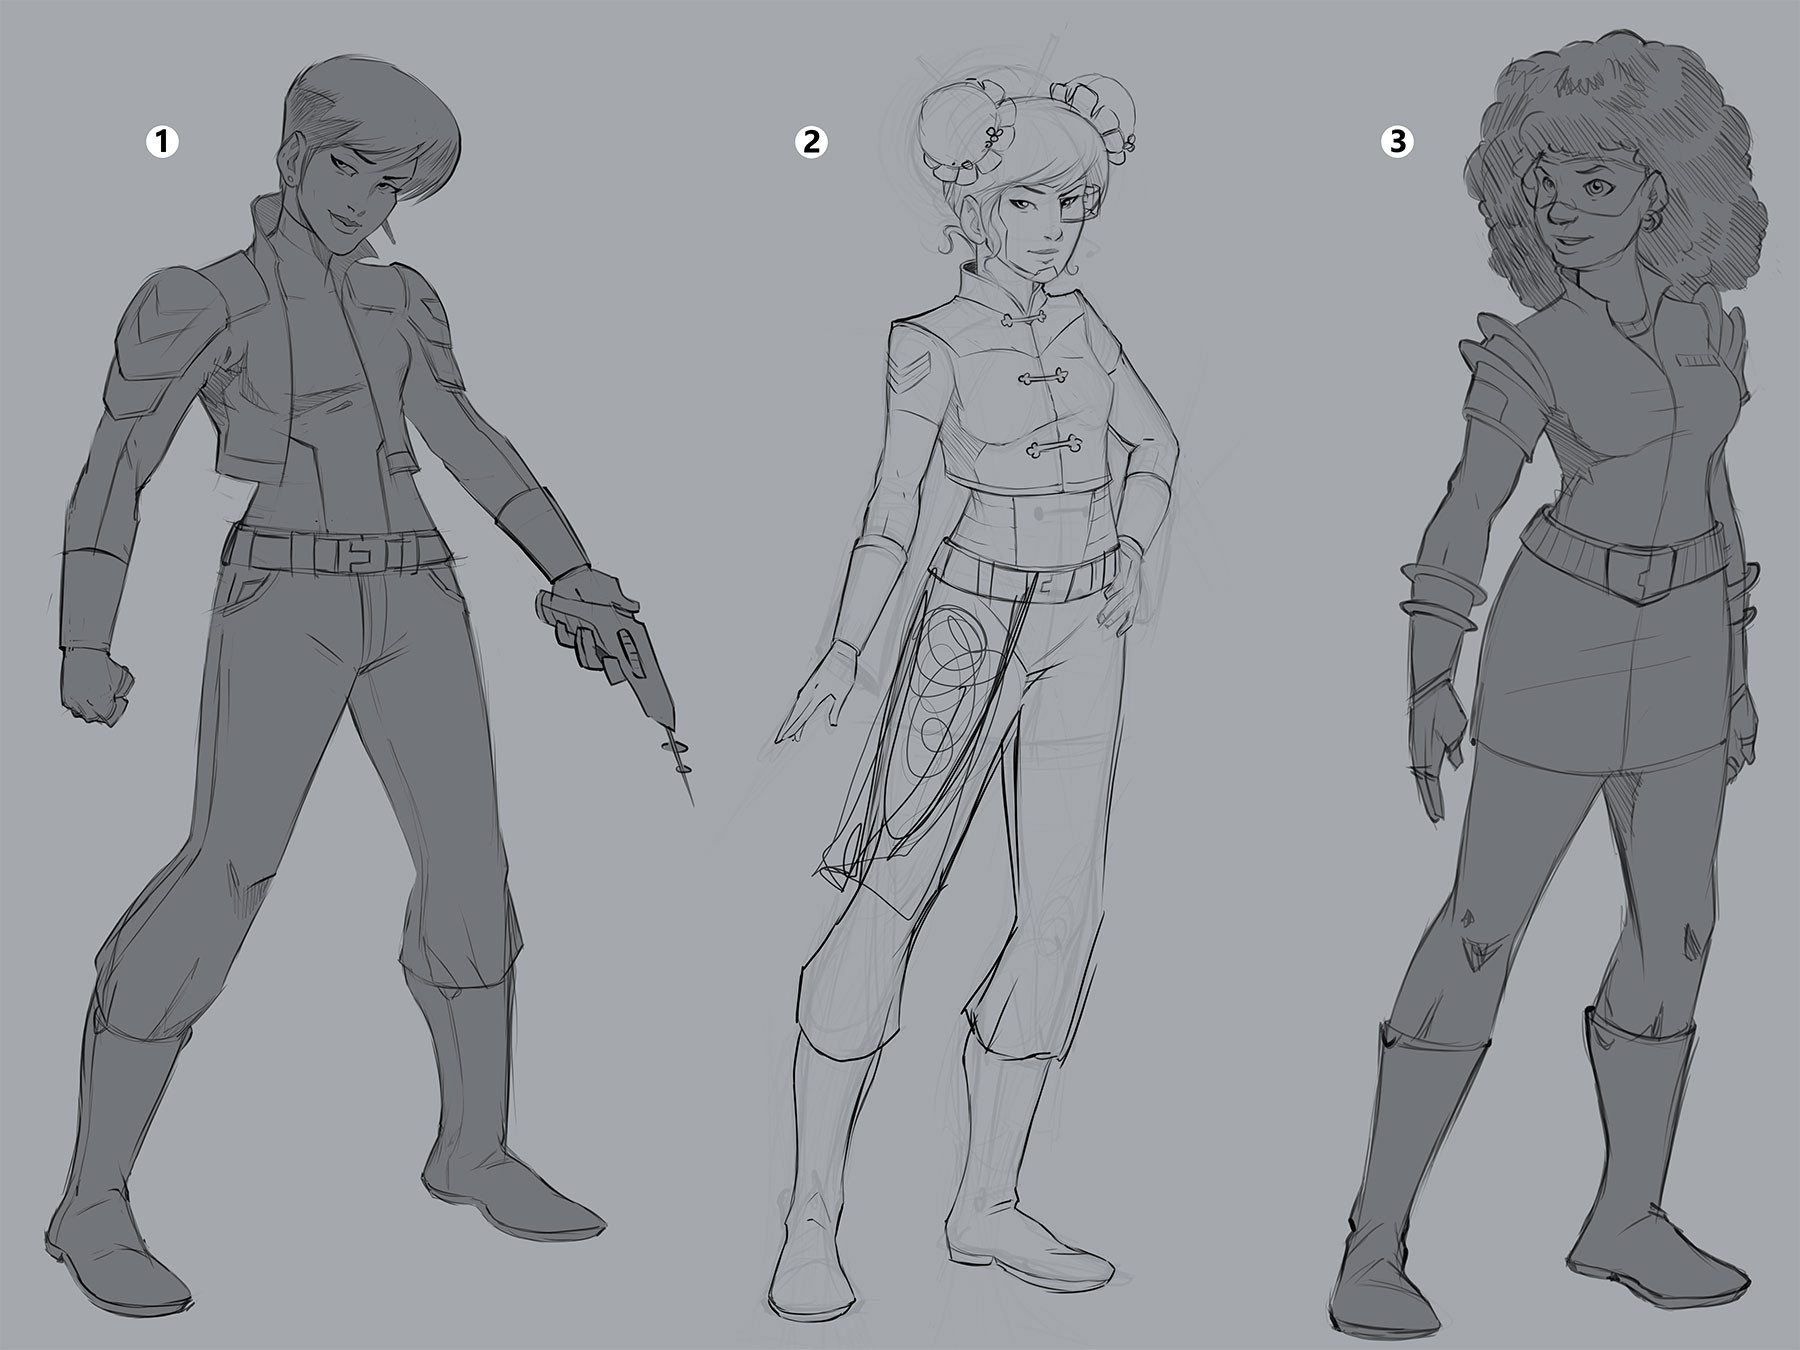 Refining the character designs